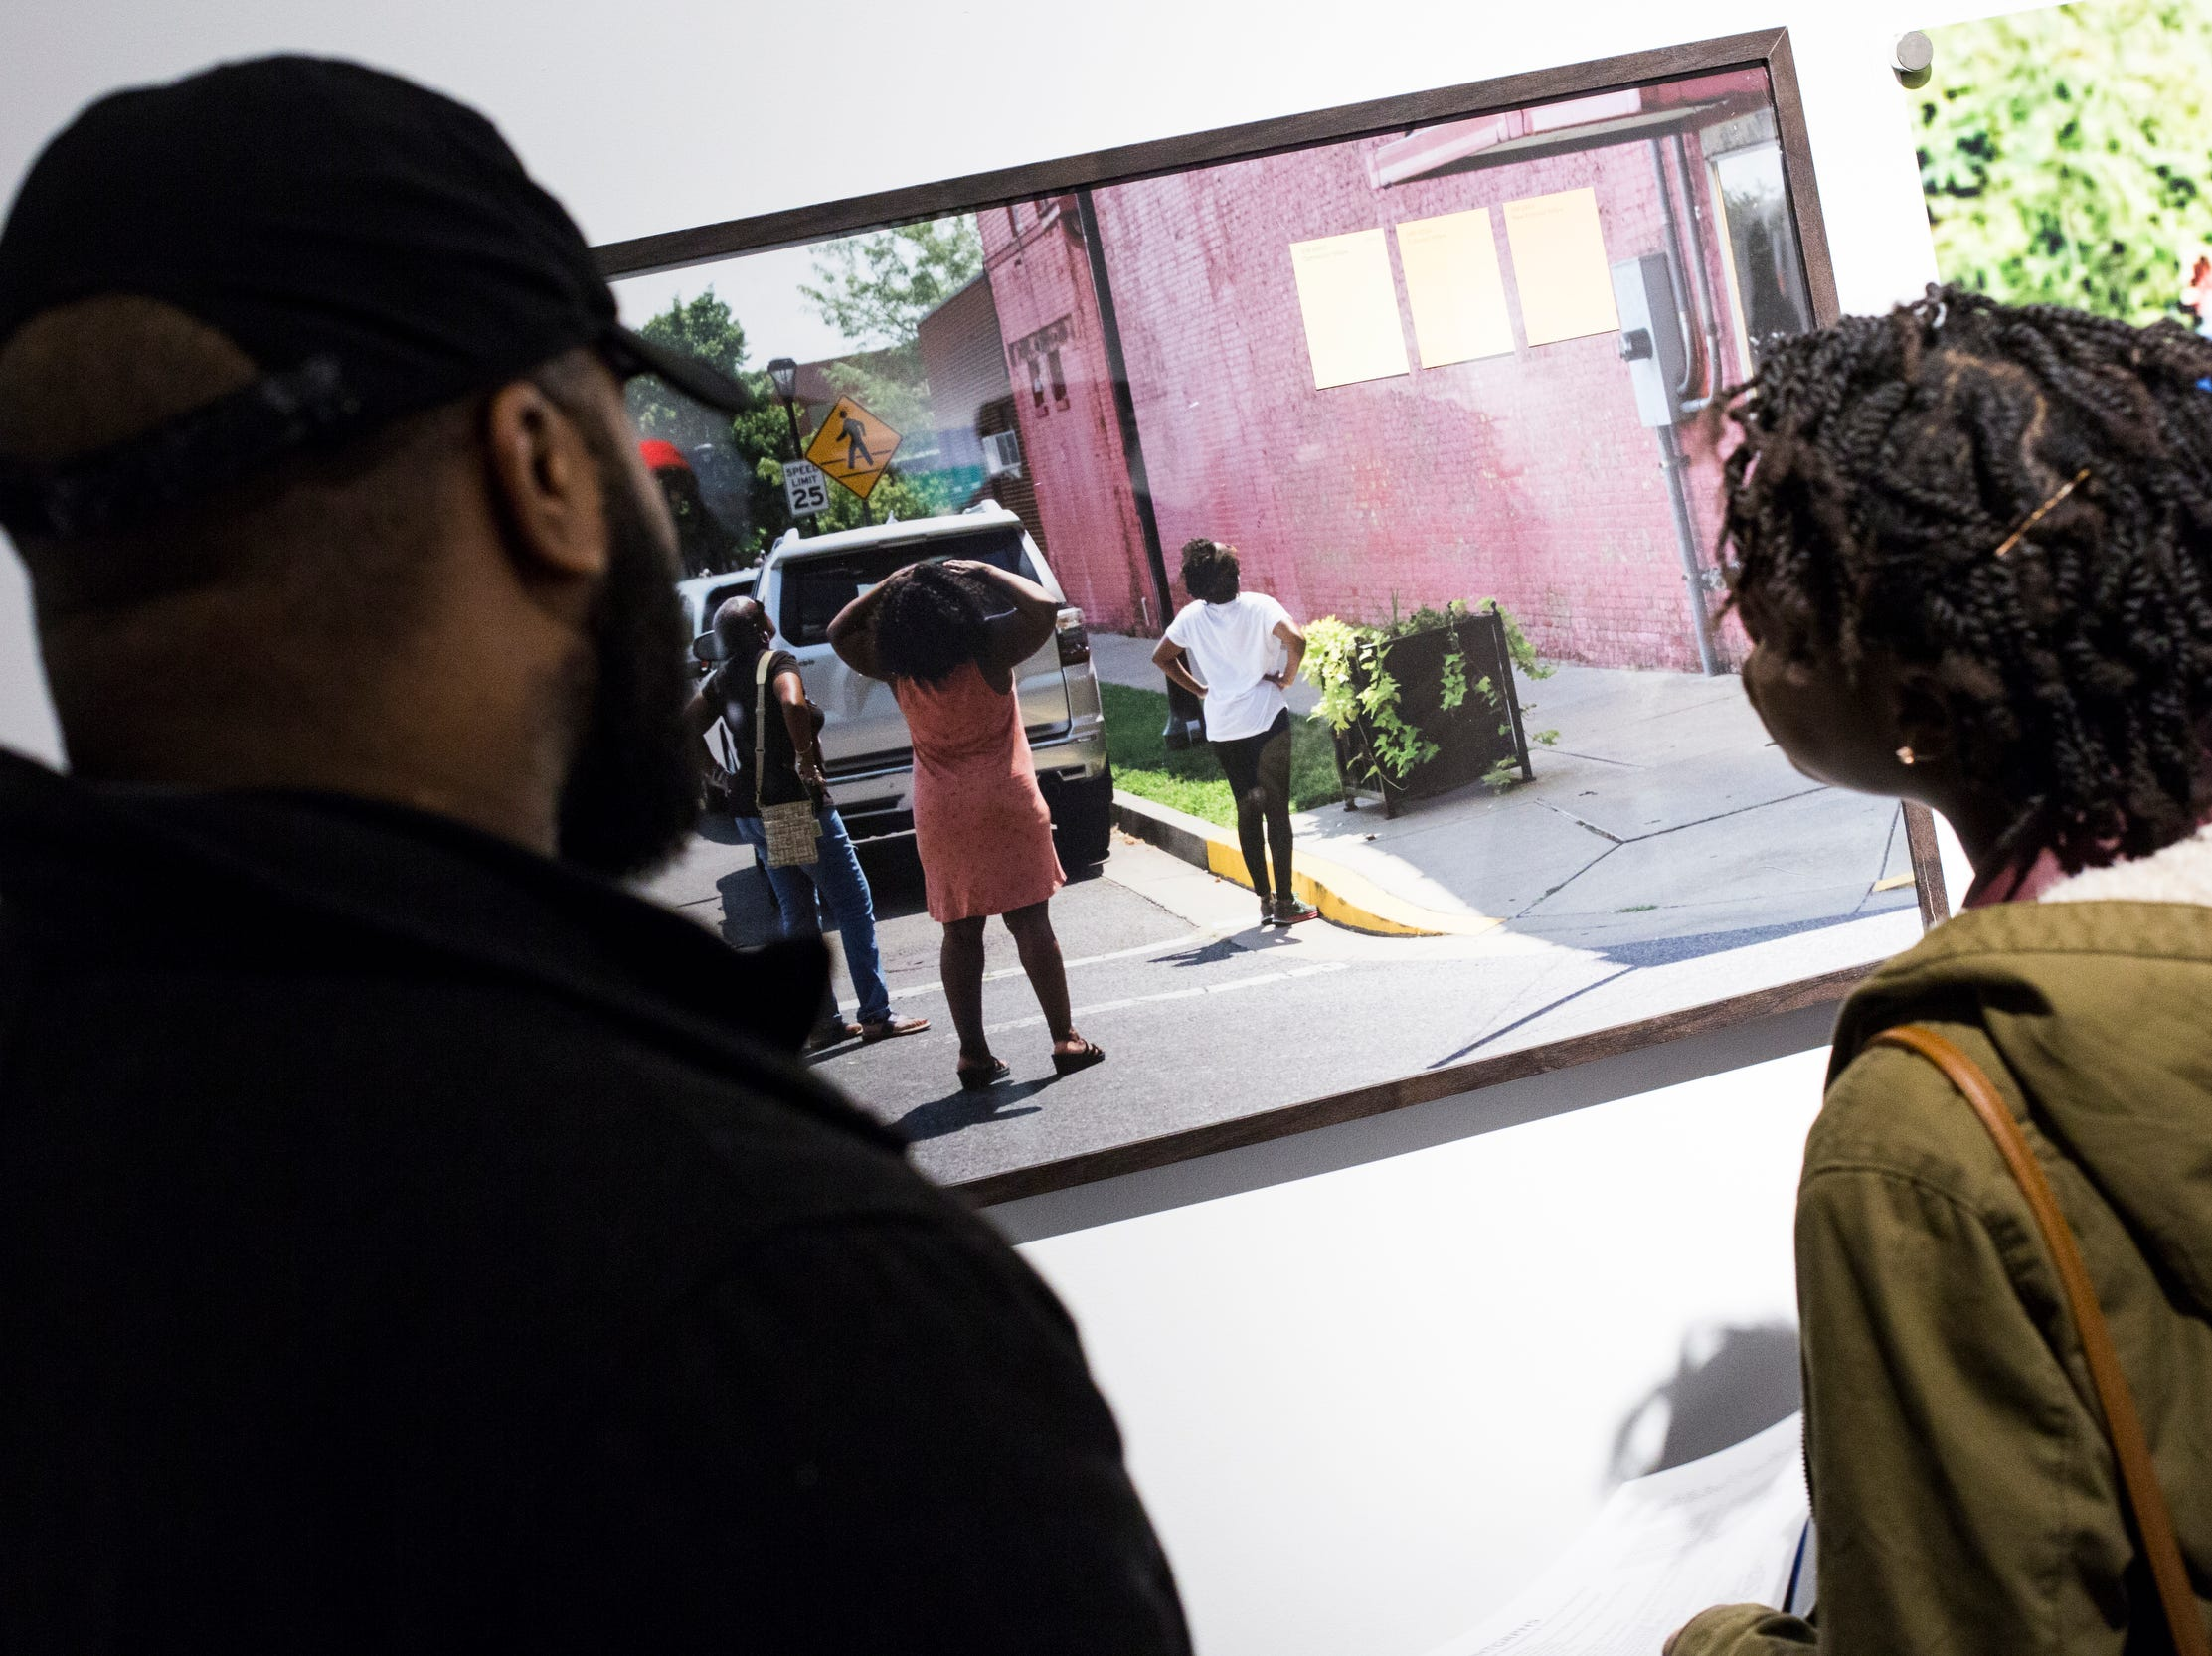 February 08, 2019 - Alandria Ivory, right, and Michael Wright, left, look at work during the PHTGRPHS show featuring work by Lester Merriweather and Lawrence Matthews at The CMPLX. The CMPLX, a gallery, office and work space for The Collective, is located at 2234 Lamar Ave. in the Lamar Airways Shopping Center in Orange Mound.